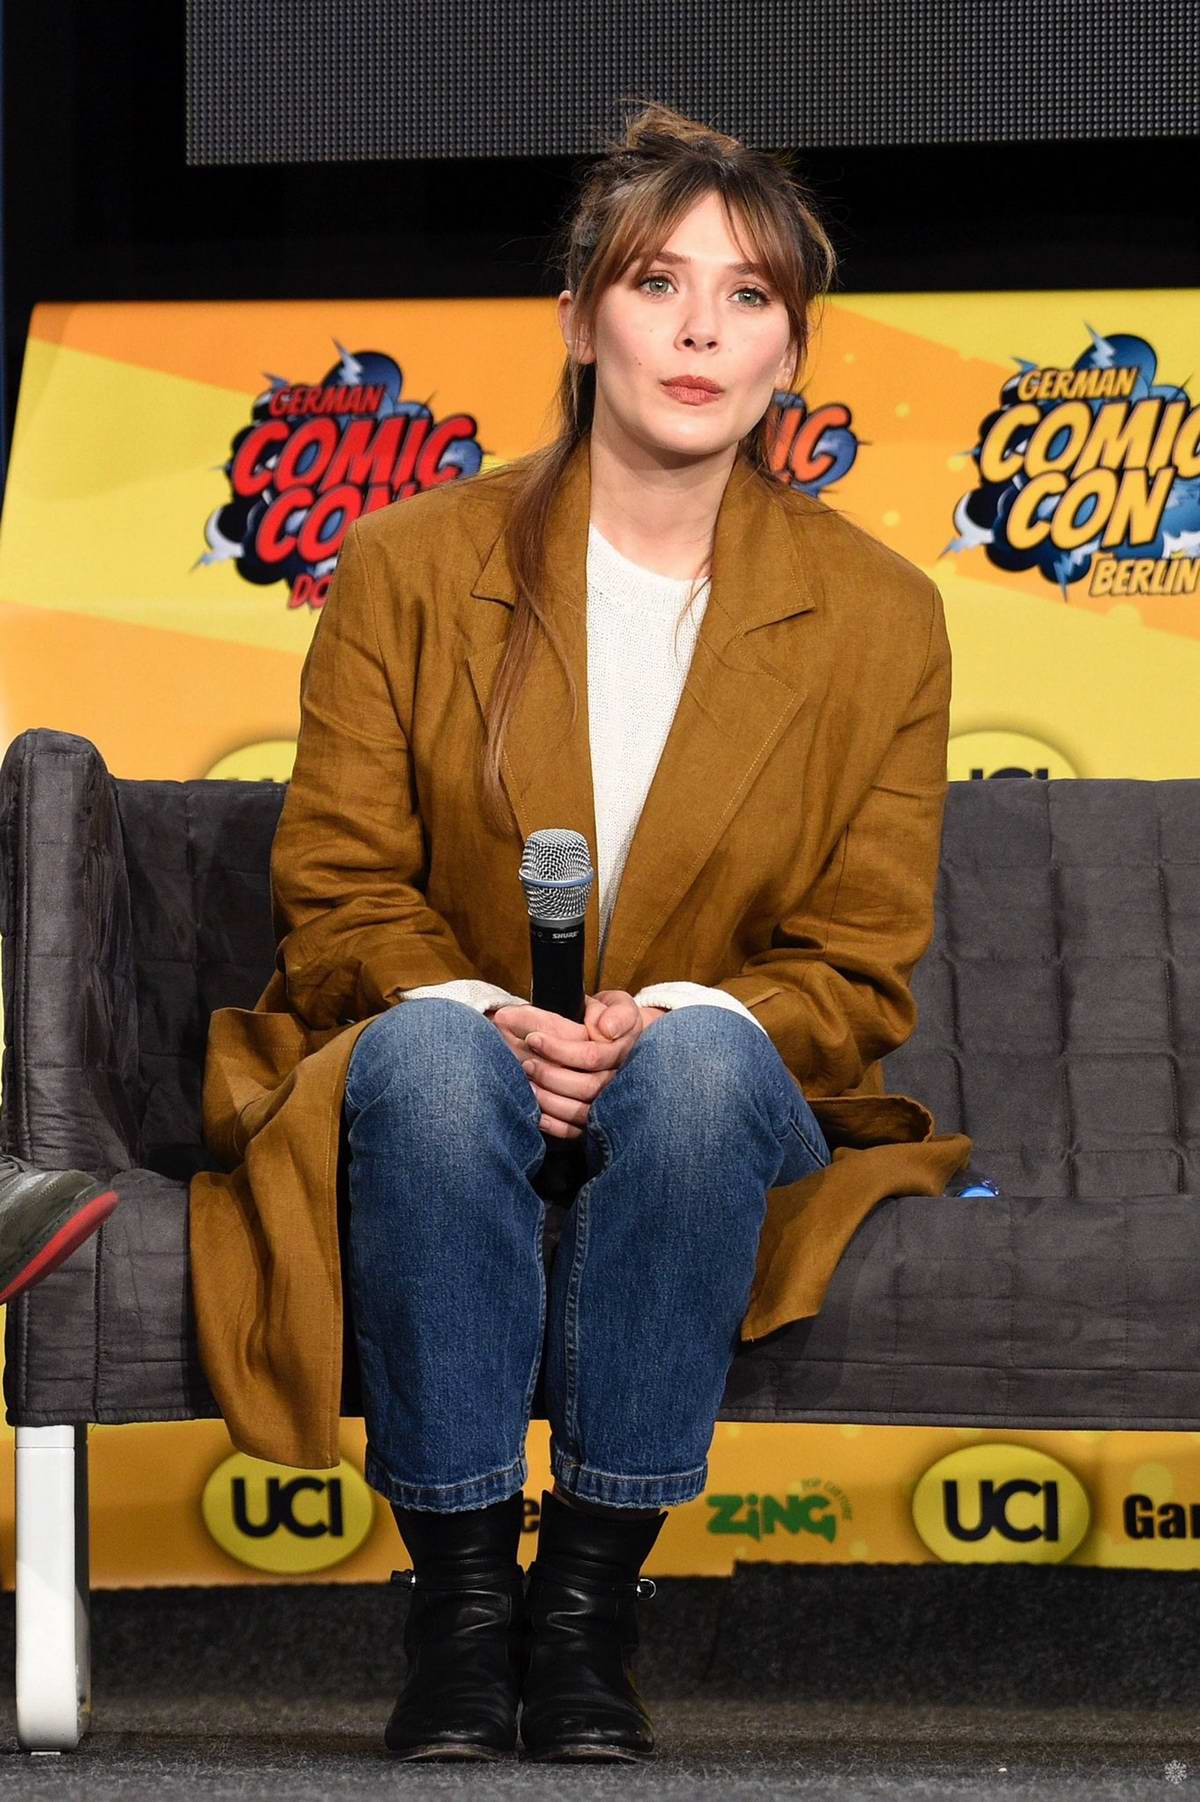 Elizabeth Olsen attends the 5th German Comic Con Dortmund 2019 in Dortmund, Germany